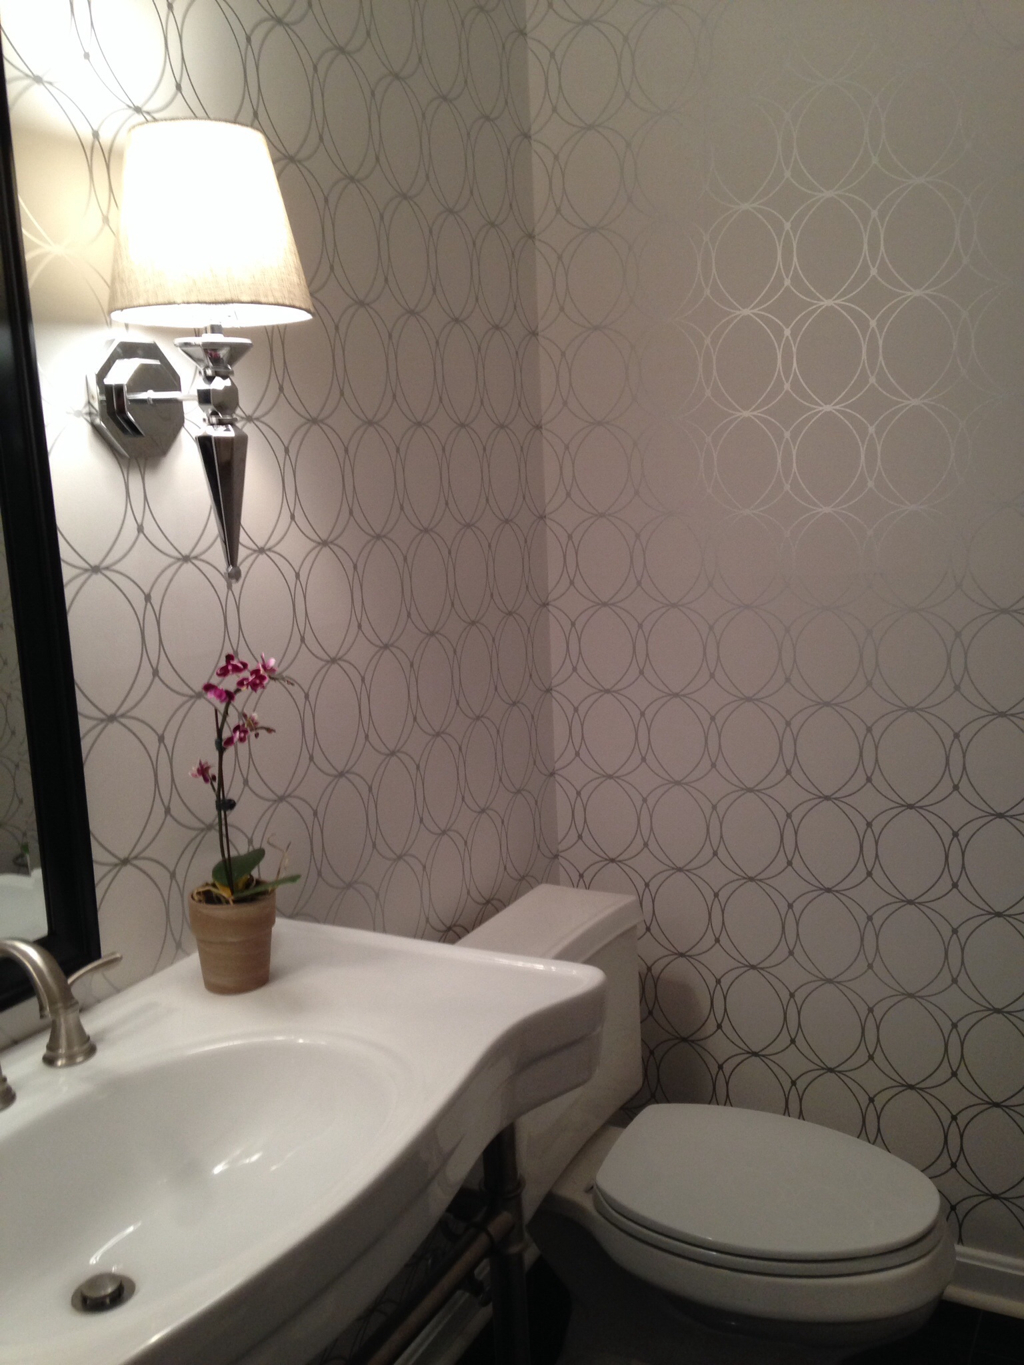 The Look For Less Powder Room Wallpaper